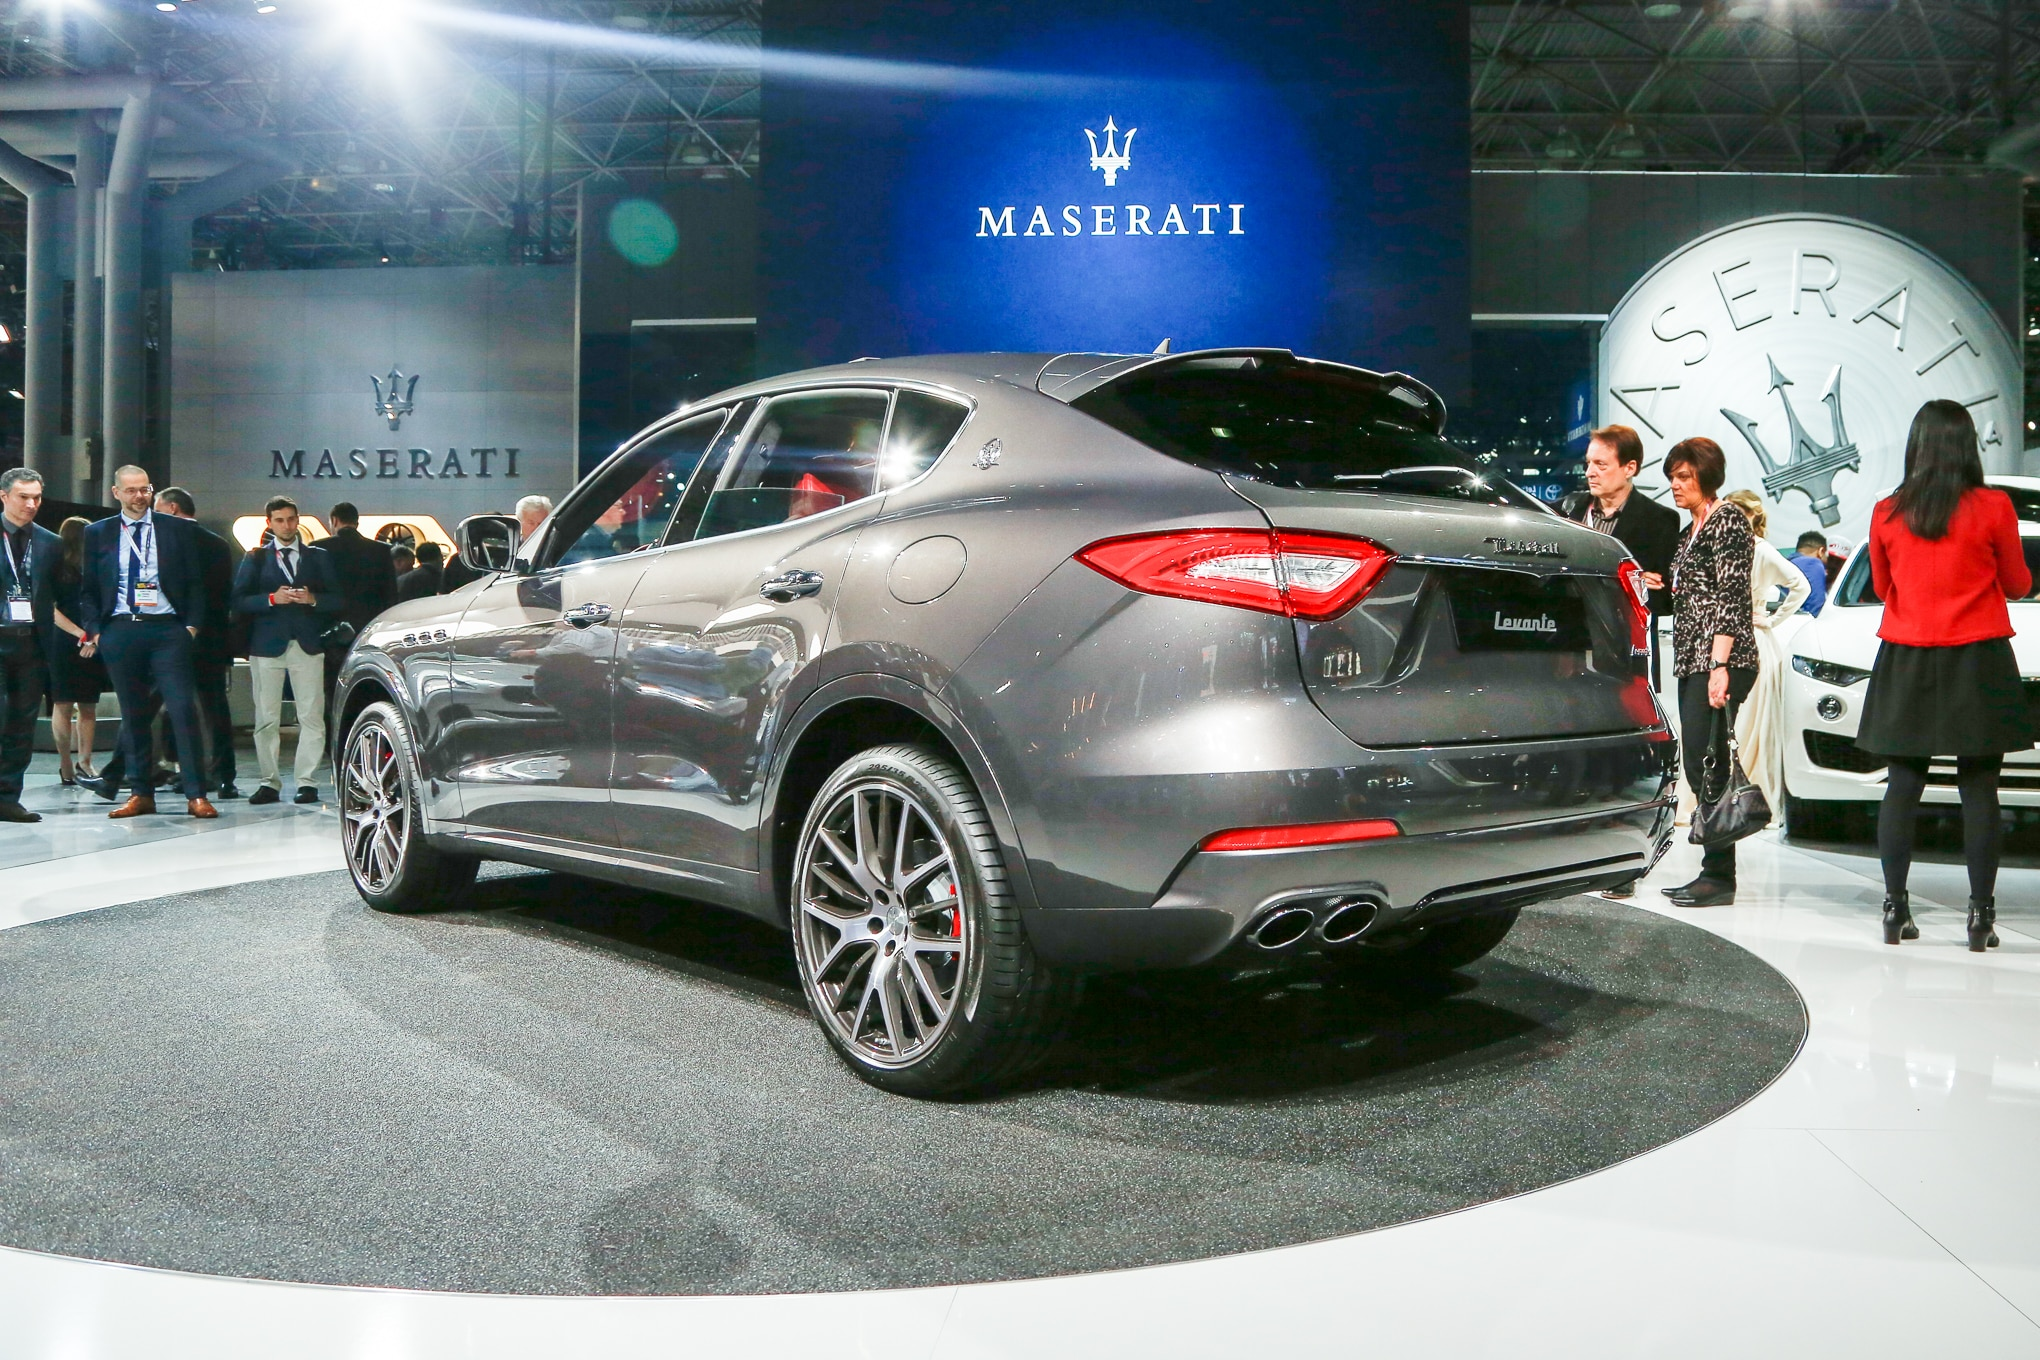 2017 maserati levante priced from 72 000 levante s from. Black Bedroom Furniture Sets. Home Design Ideas